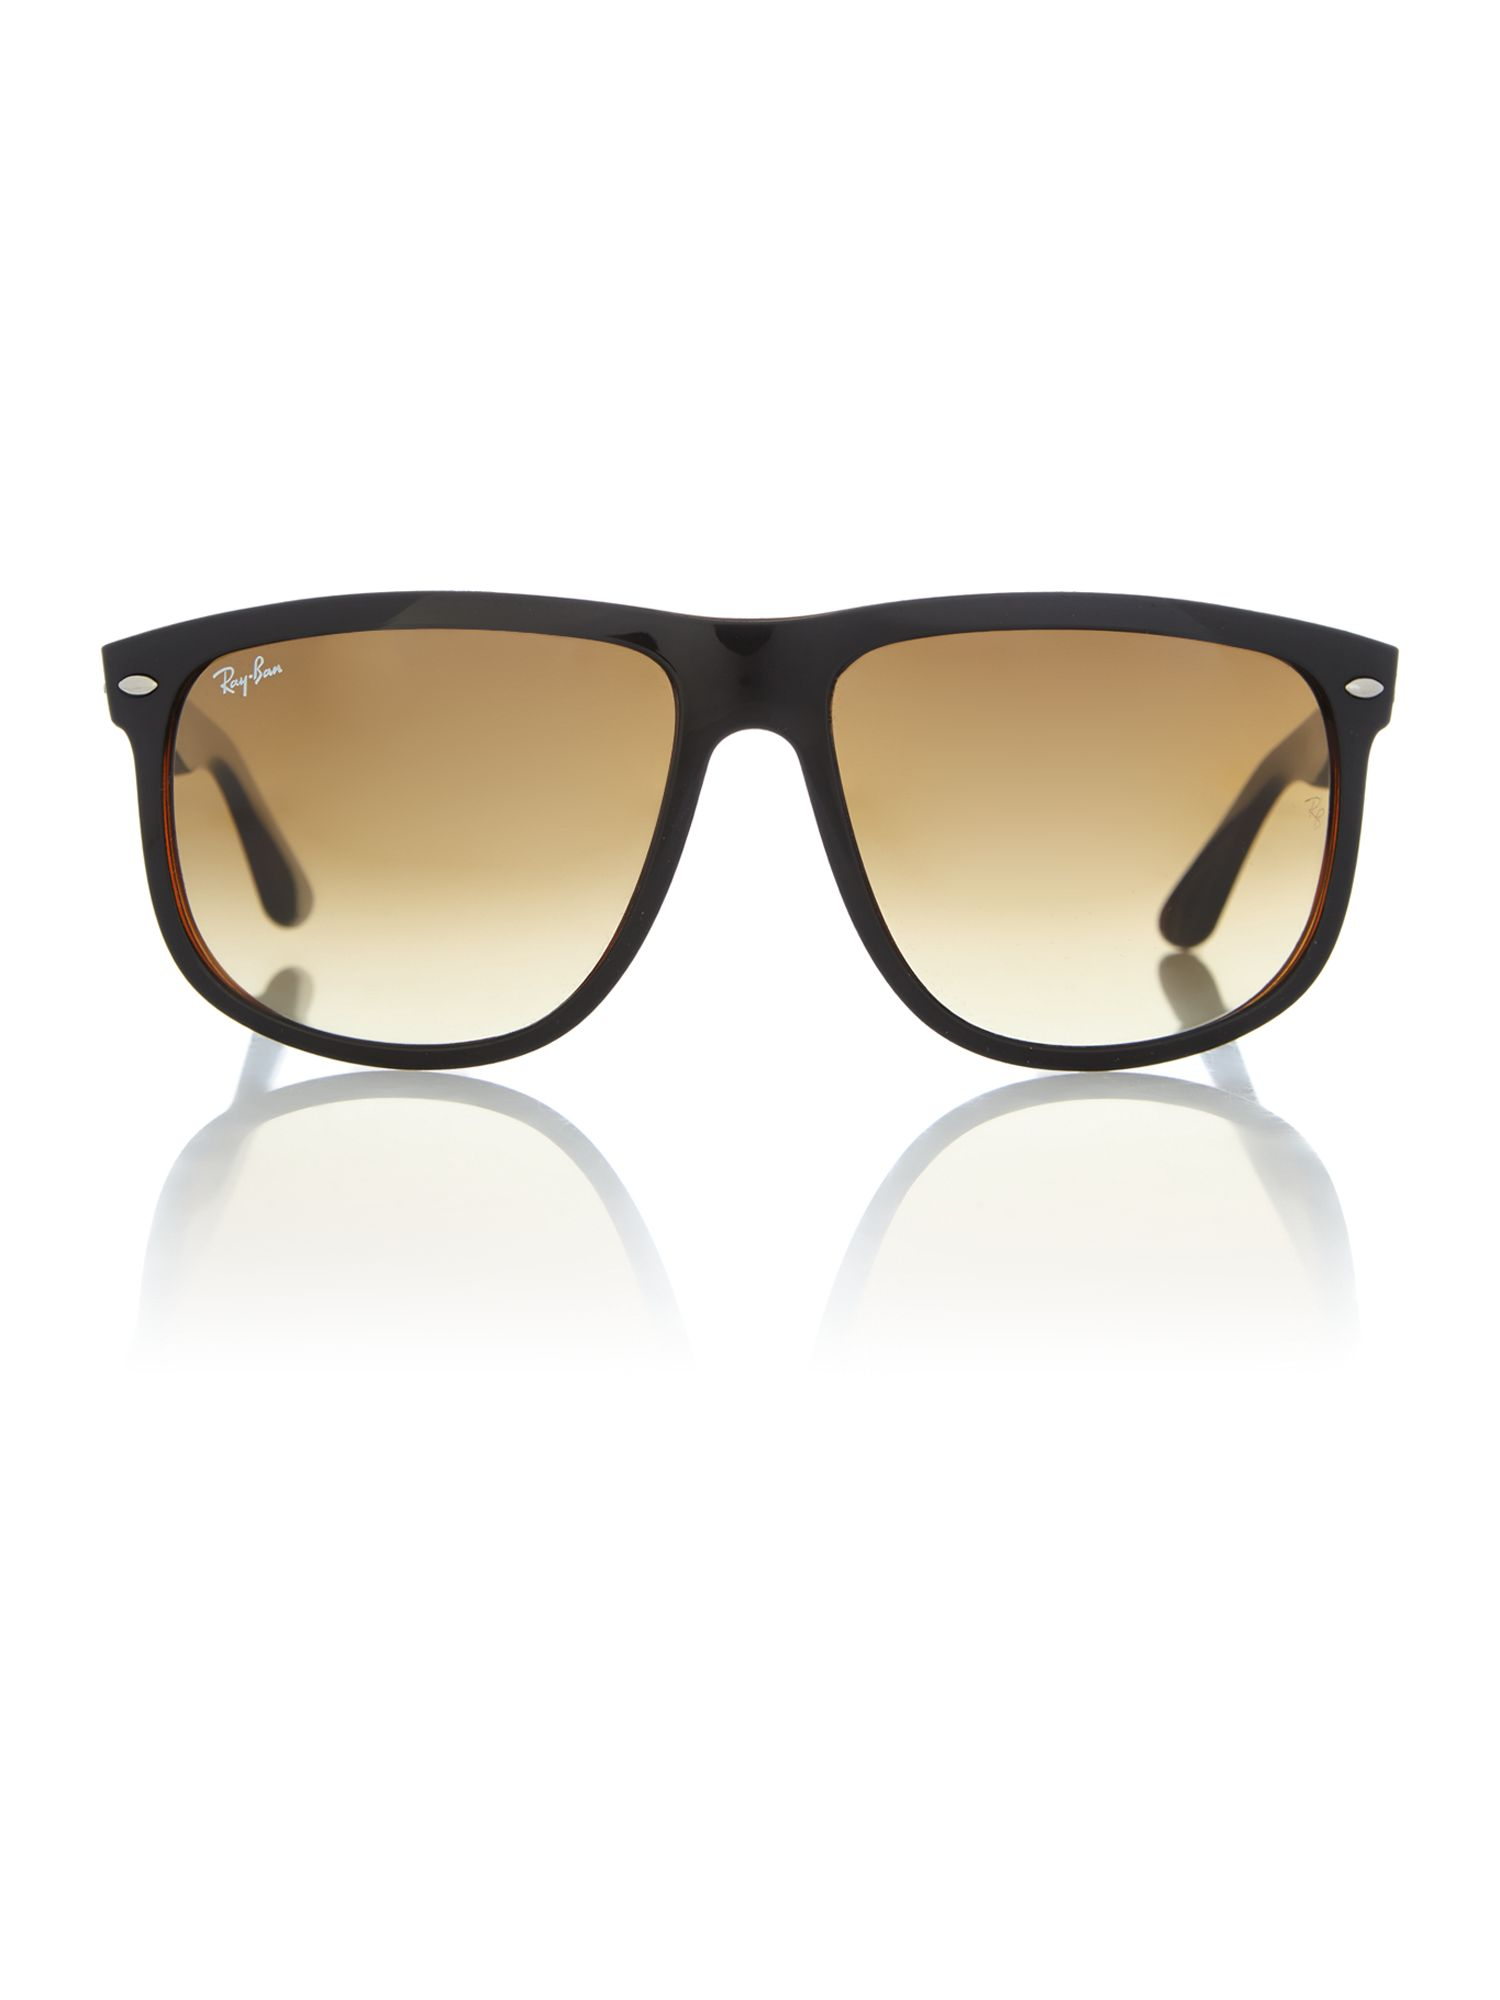 Rb4147 men`s square sunglasses